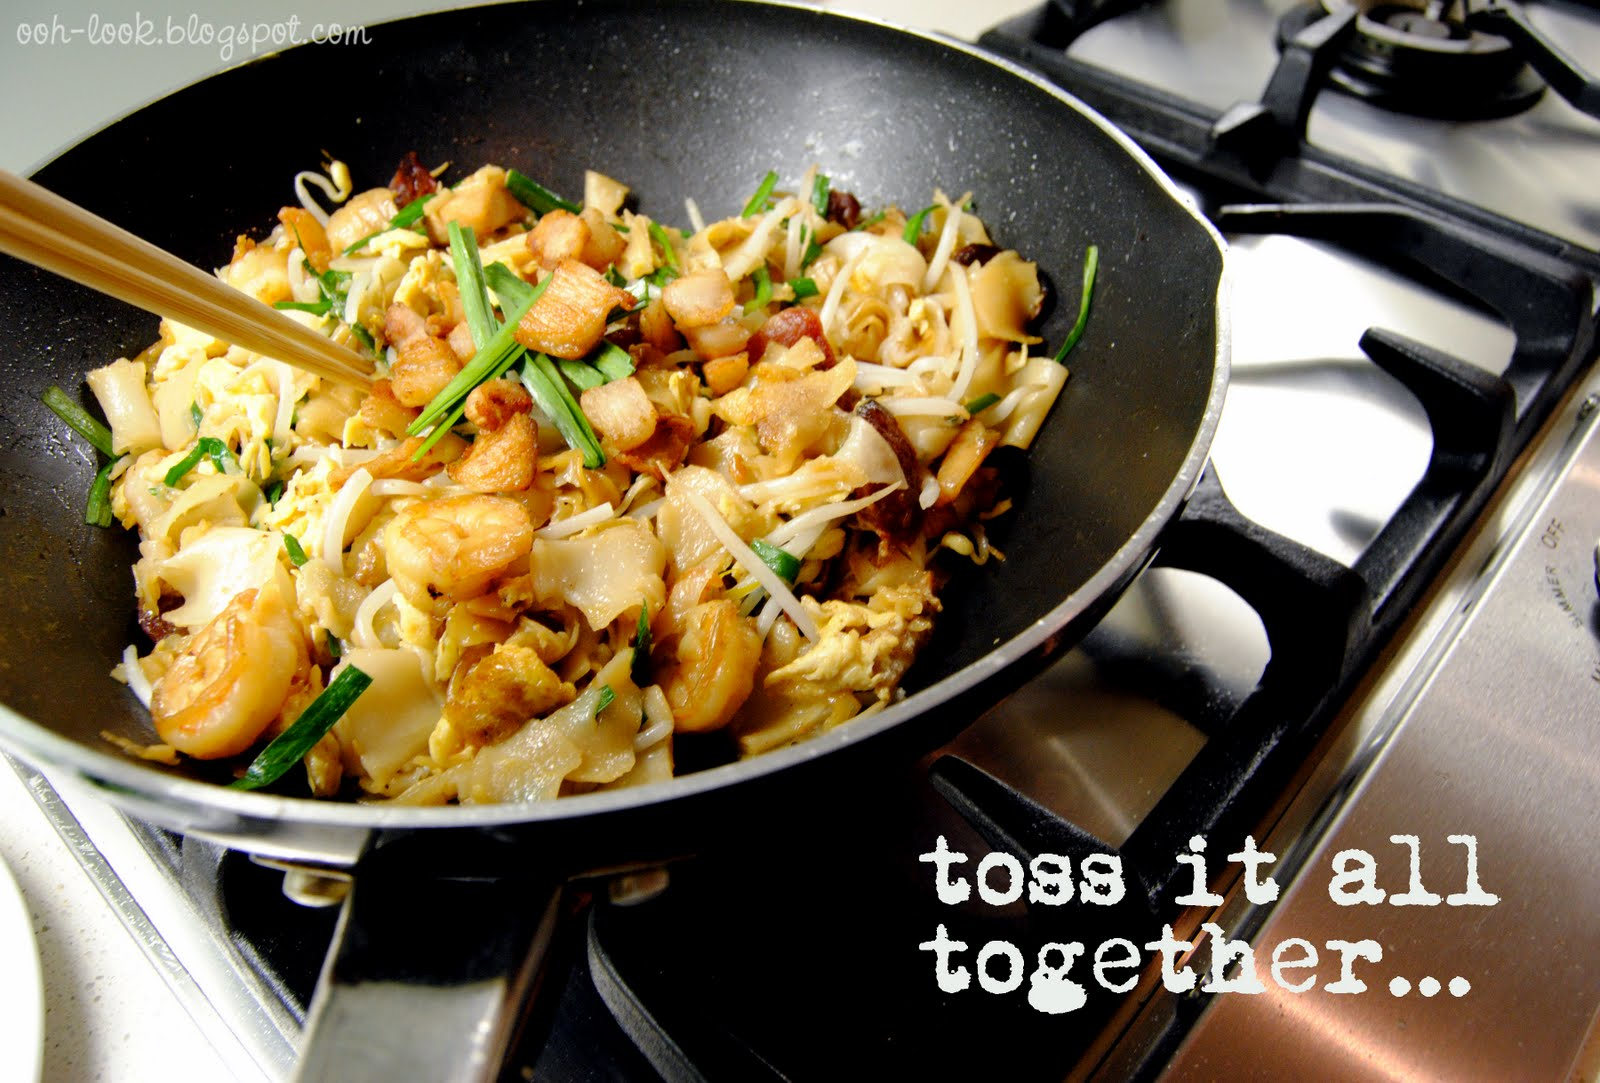 Ooh, Look...: Go for Poh's Char Kway Teow